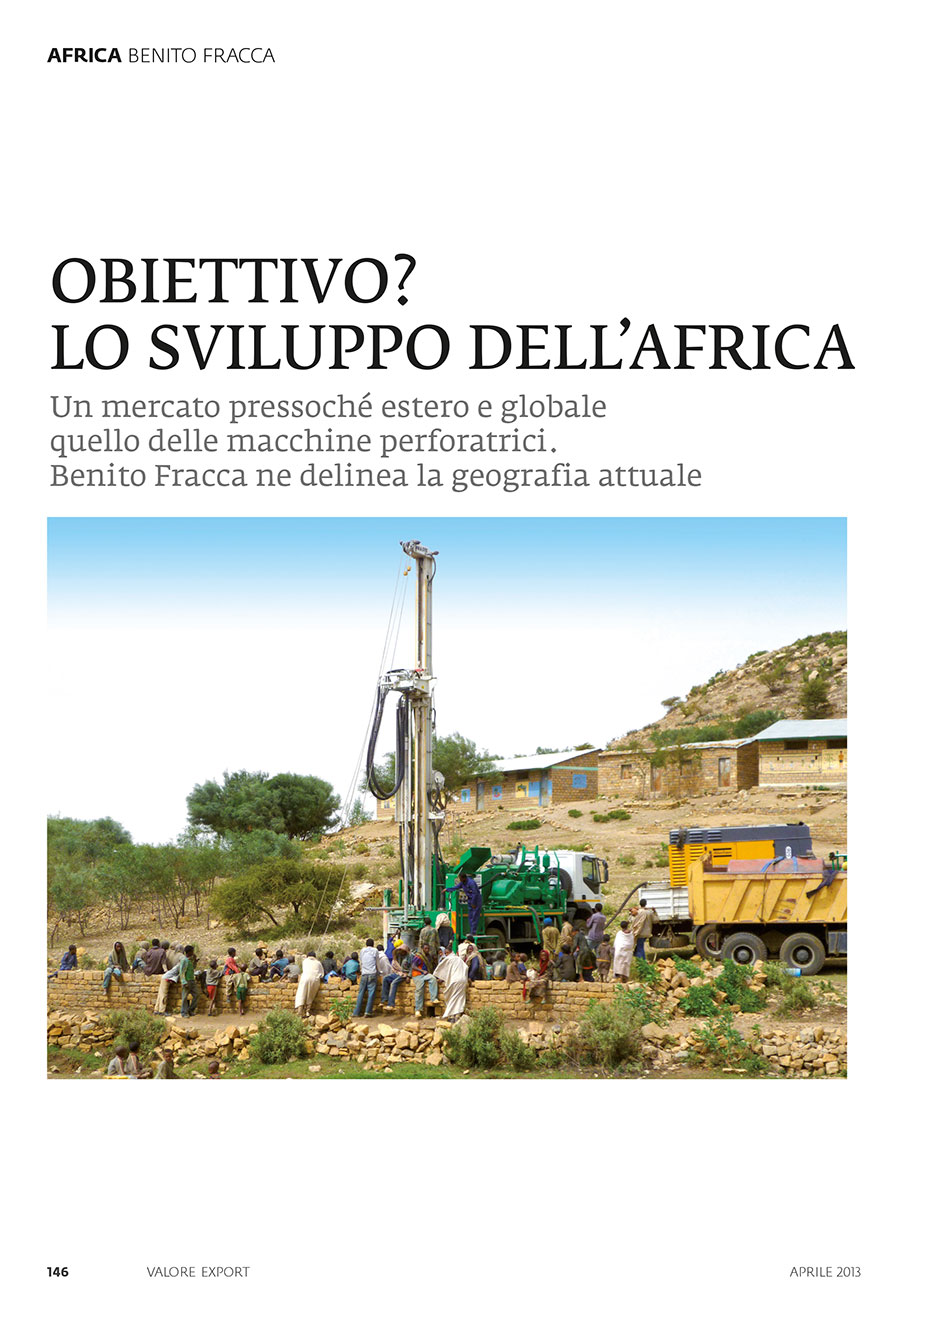 articles-valore-export---it---20-aprile-2013-1